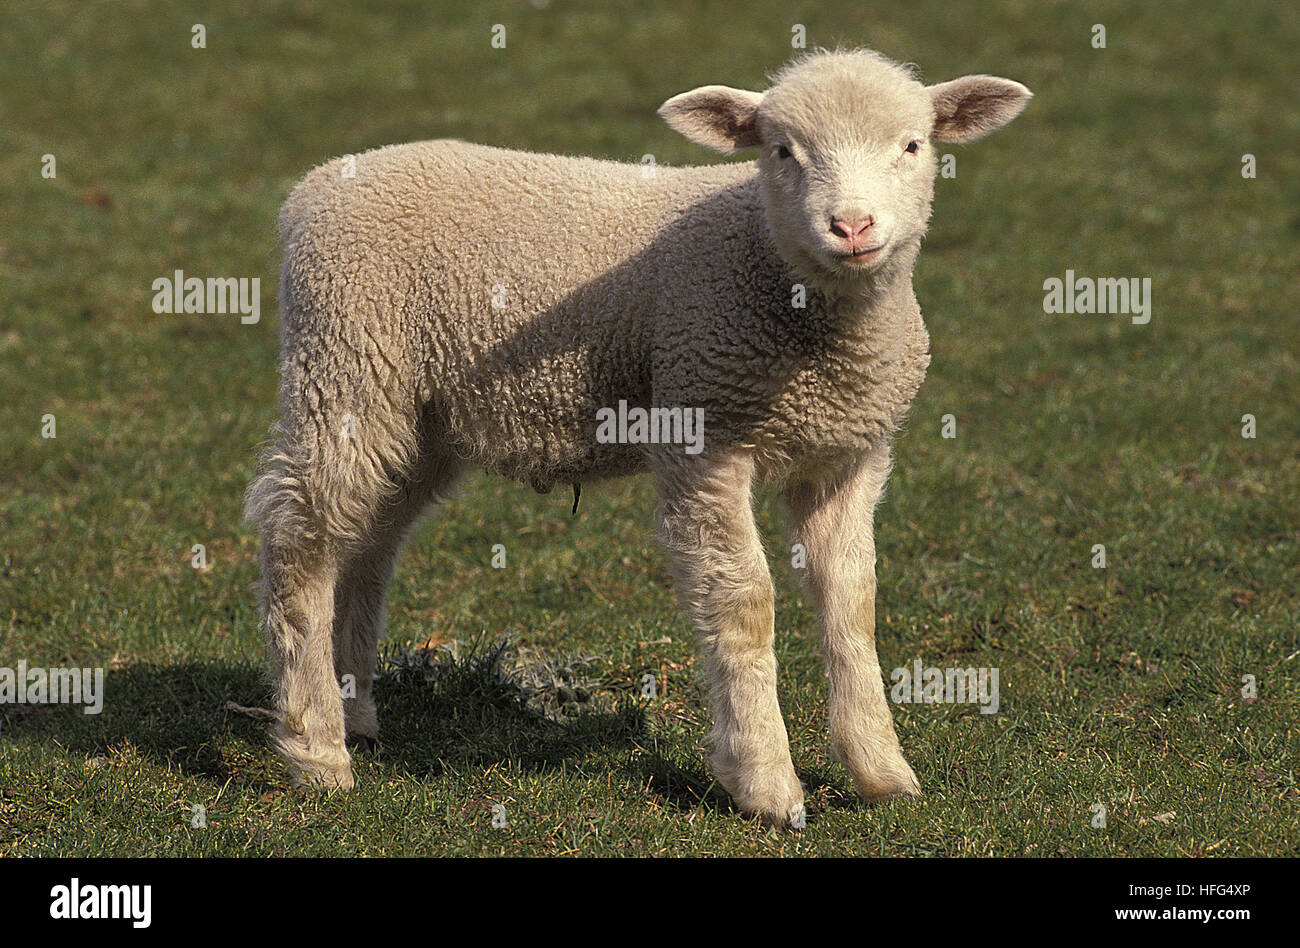 Ile de France Domestic Sheep, Lamb, a French Breed - Stock Image